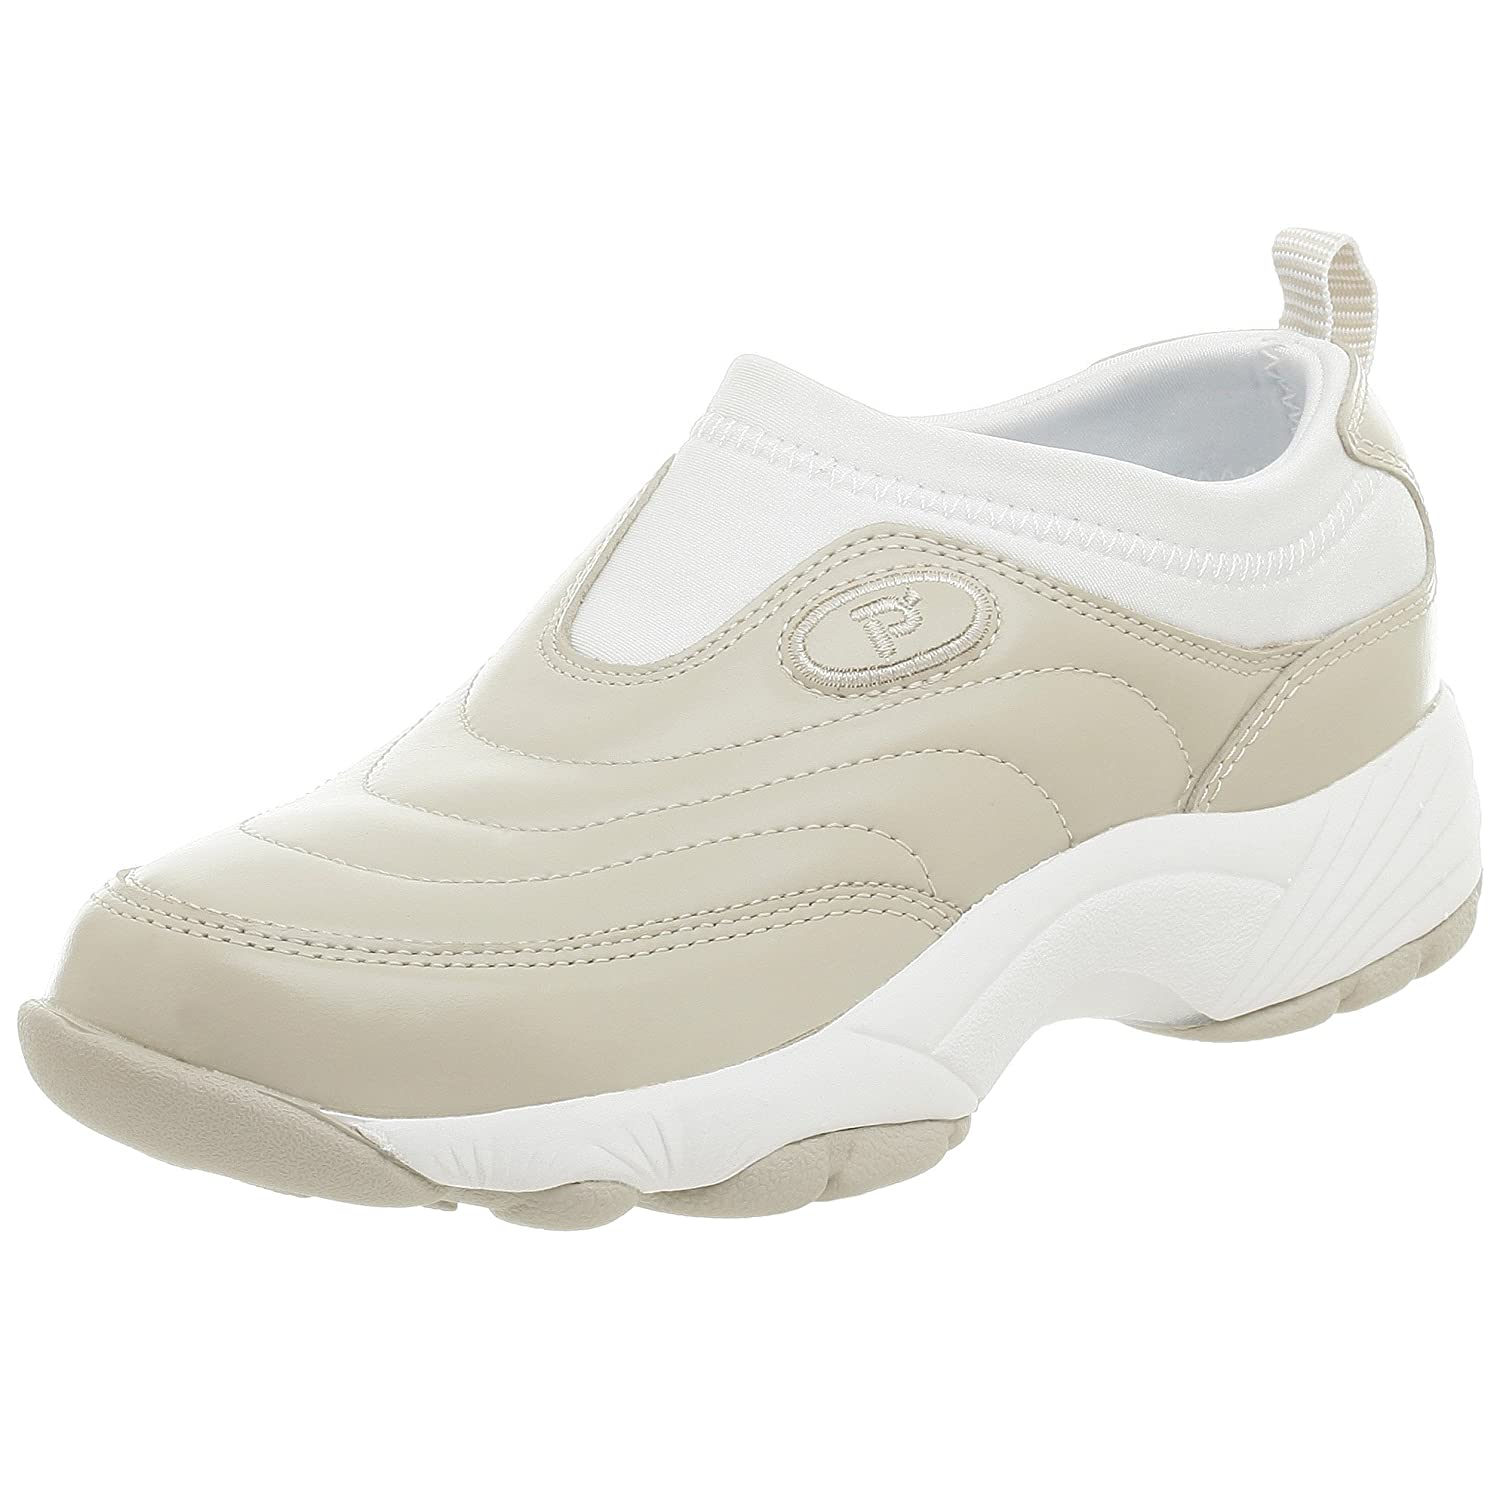 Propet Women's W3851 Wash & Wear Slip-On B000PYK3MQ 6.5 X (US Women's 6.5 EE)|Bone/Wht